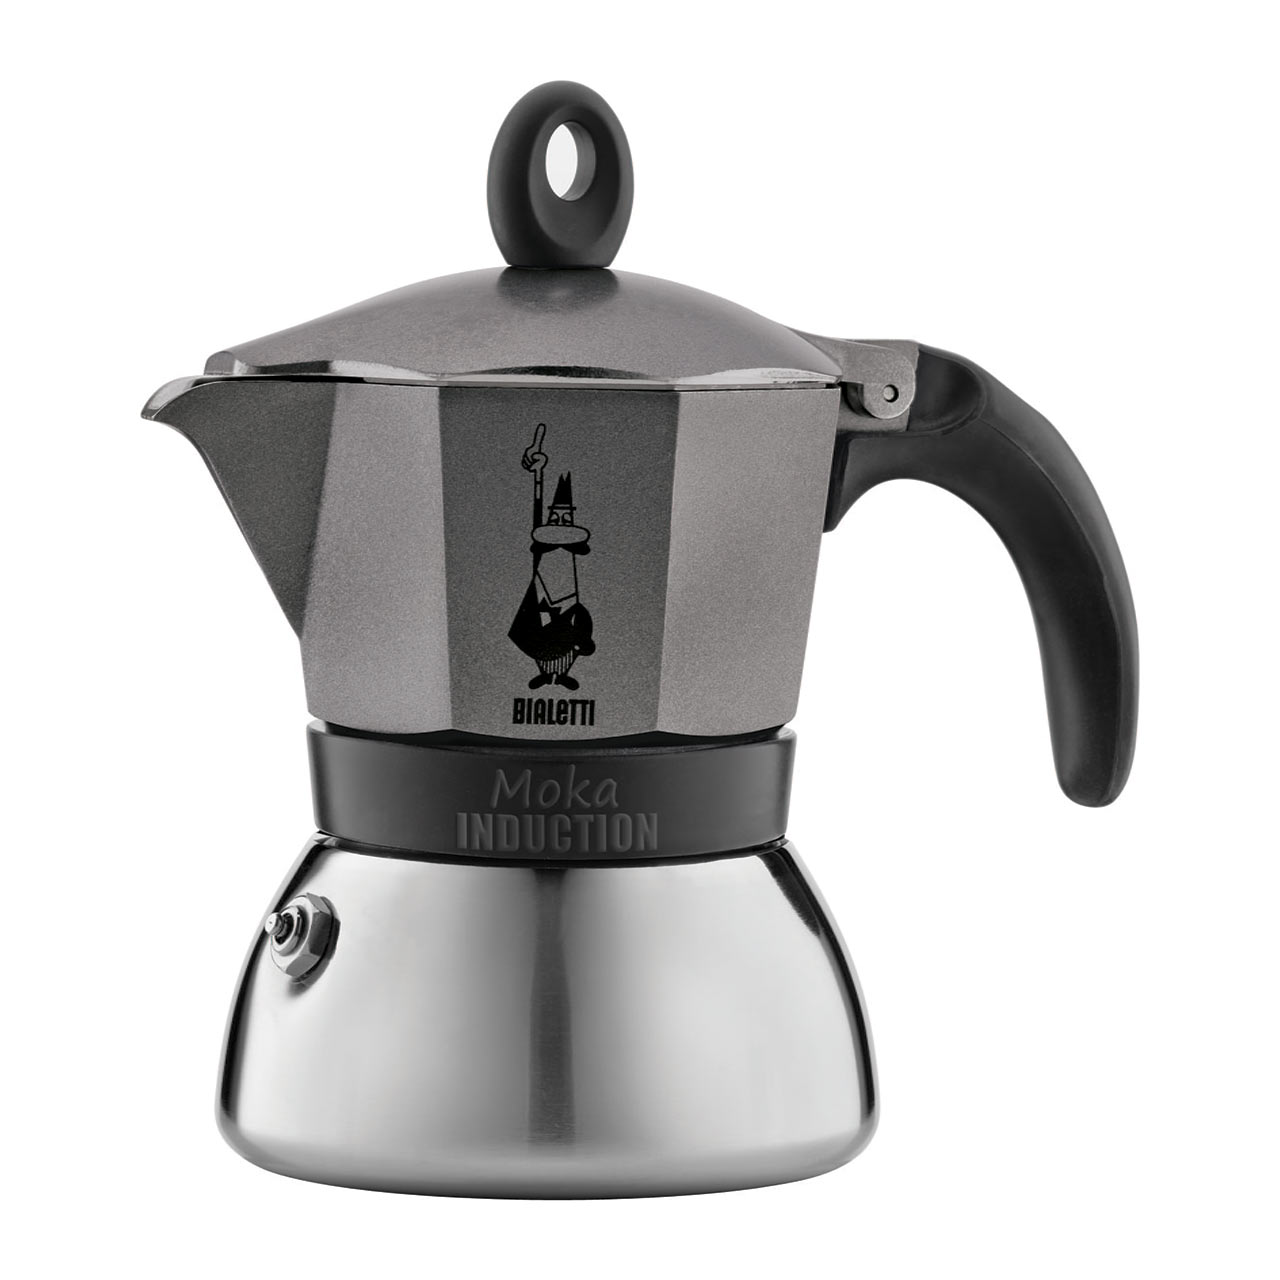 BIALETTI Moka Induction 3 Cup Espresso Coffee Maker | the design gift shop